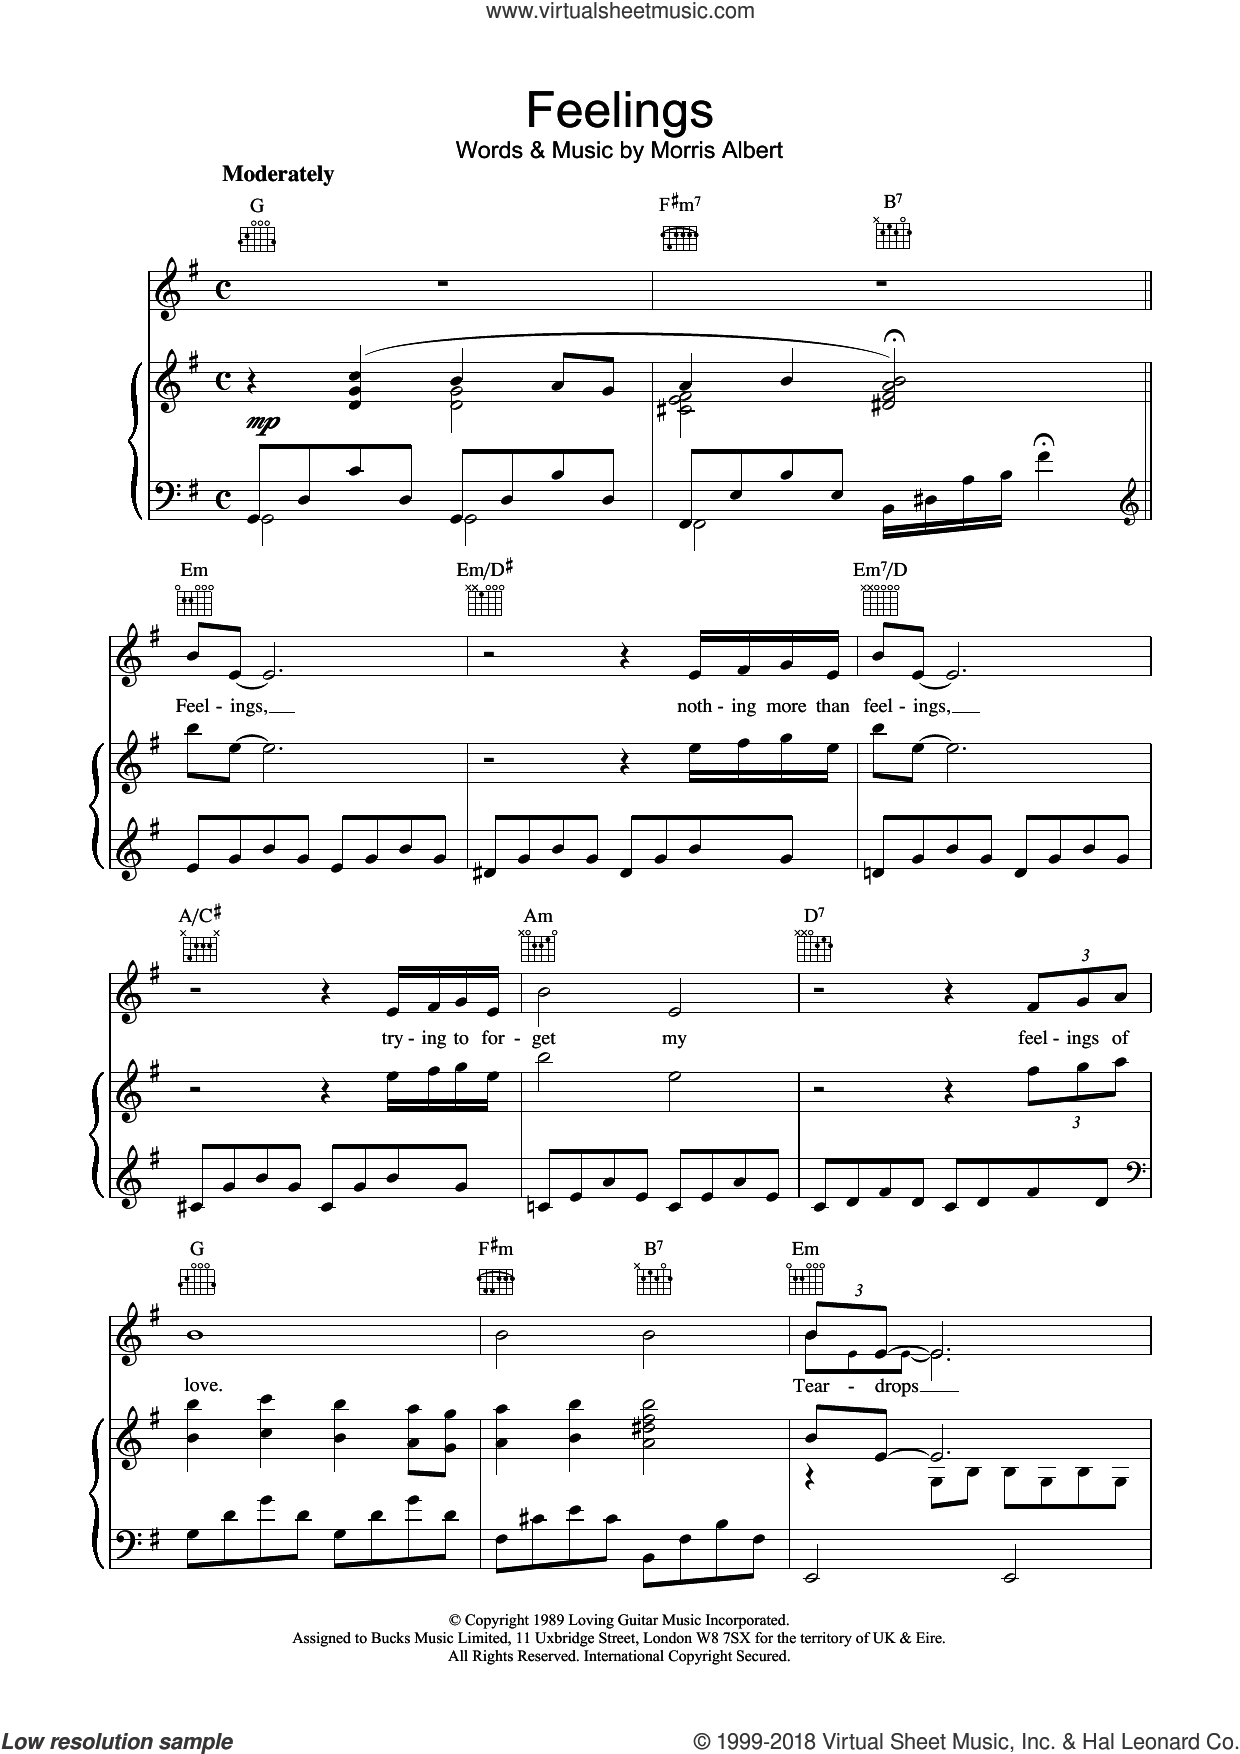 Feelings (Dime) sheet music for voice, piano or guitar by Morris Albert, intermediate skill level